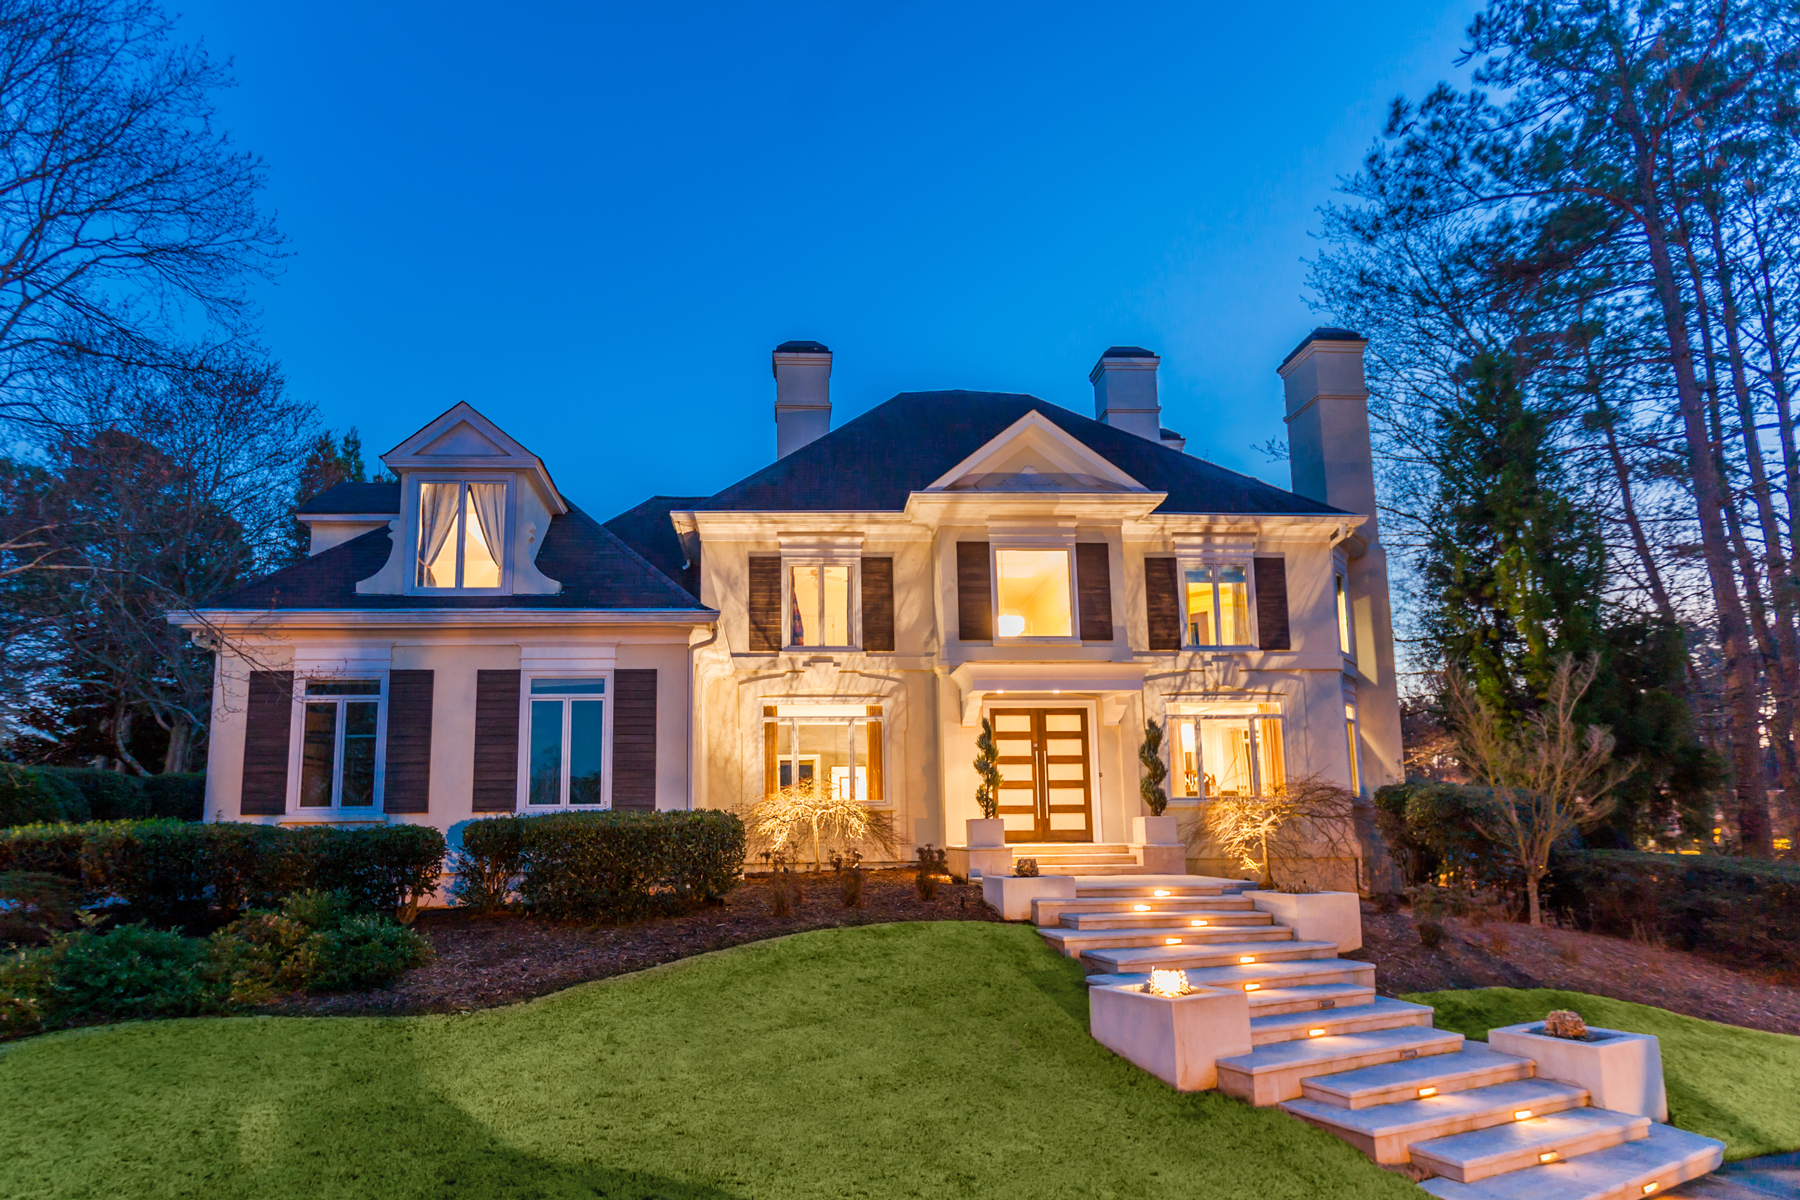 Single Family Home for Sale at Beautiful Updated Country Club Estate Home 1005 Featherstone Road Alpharetta, Georgia 30022 United States